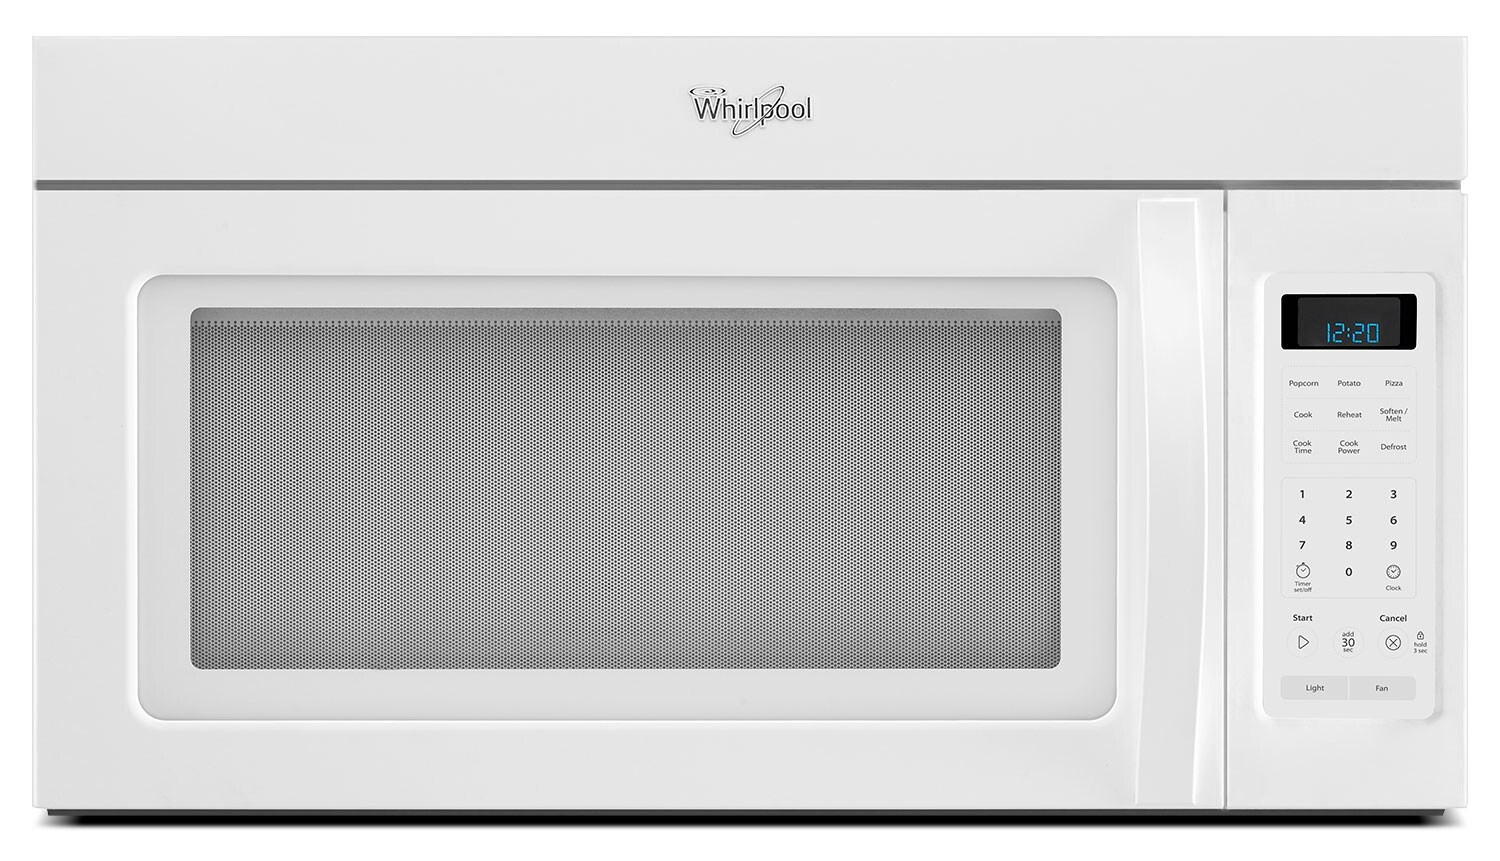 Cooking Products - Whirlpool White Over-the-Range Microwave (1.7 Cu. Ft.) - YWMH31017AW